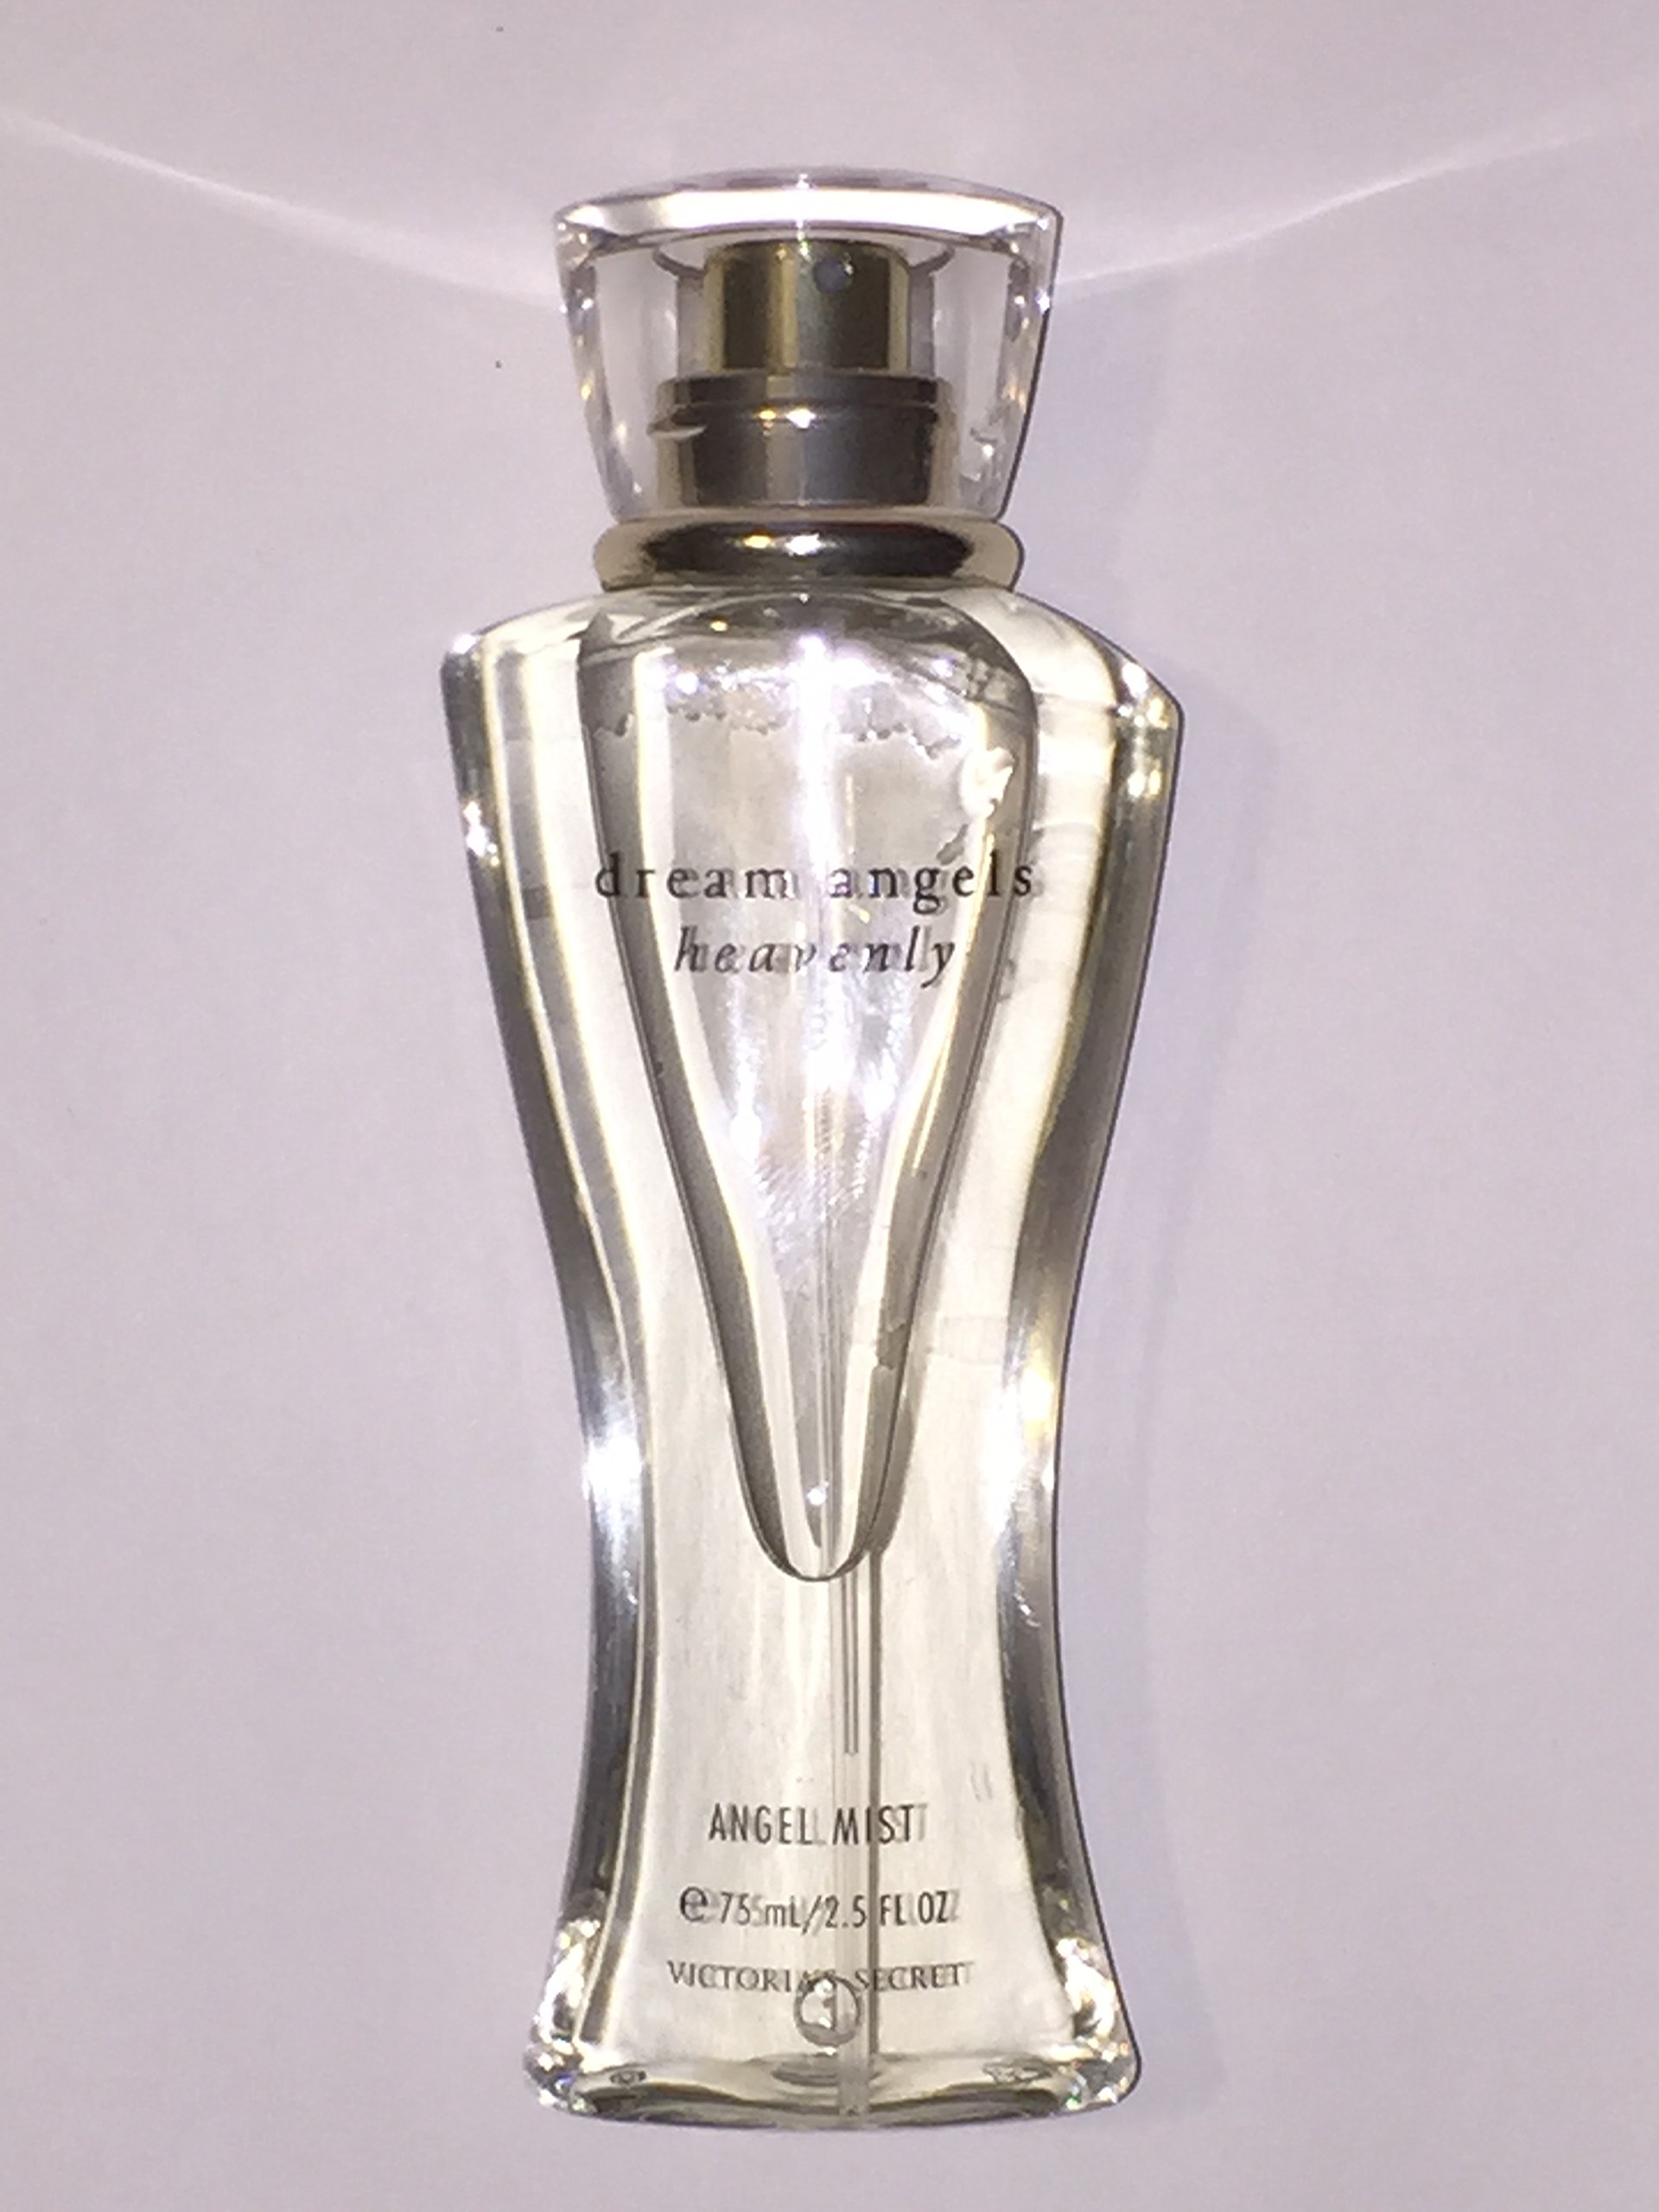 Victoria's Secret Dream Angels Heavenly 2.5 Oz